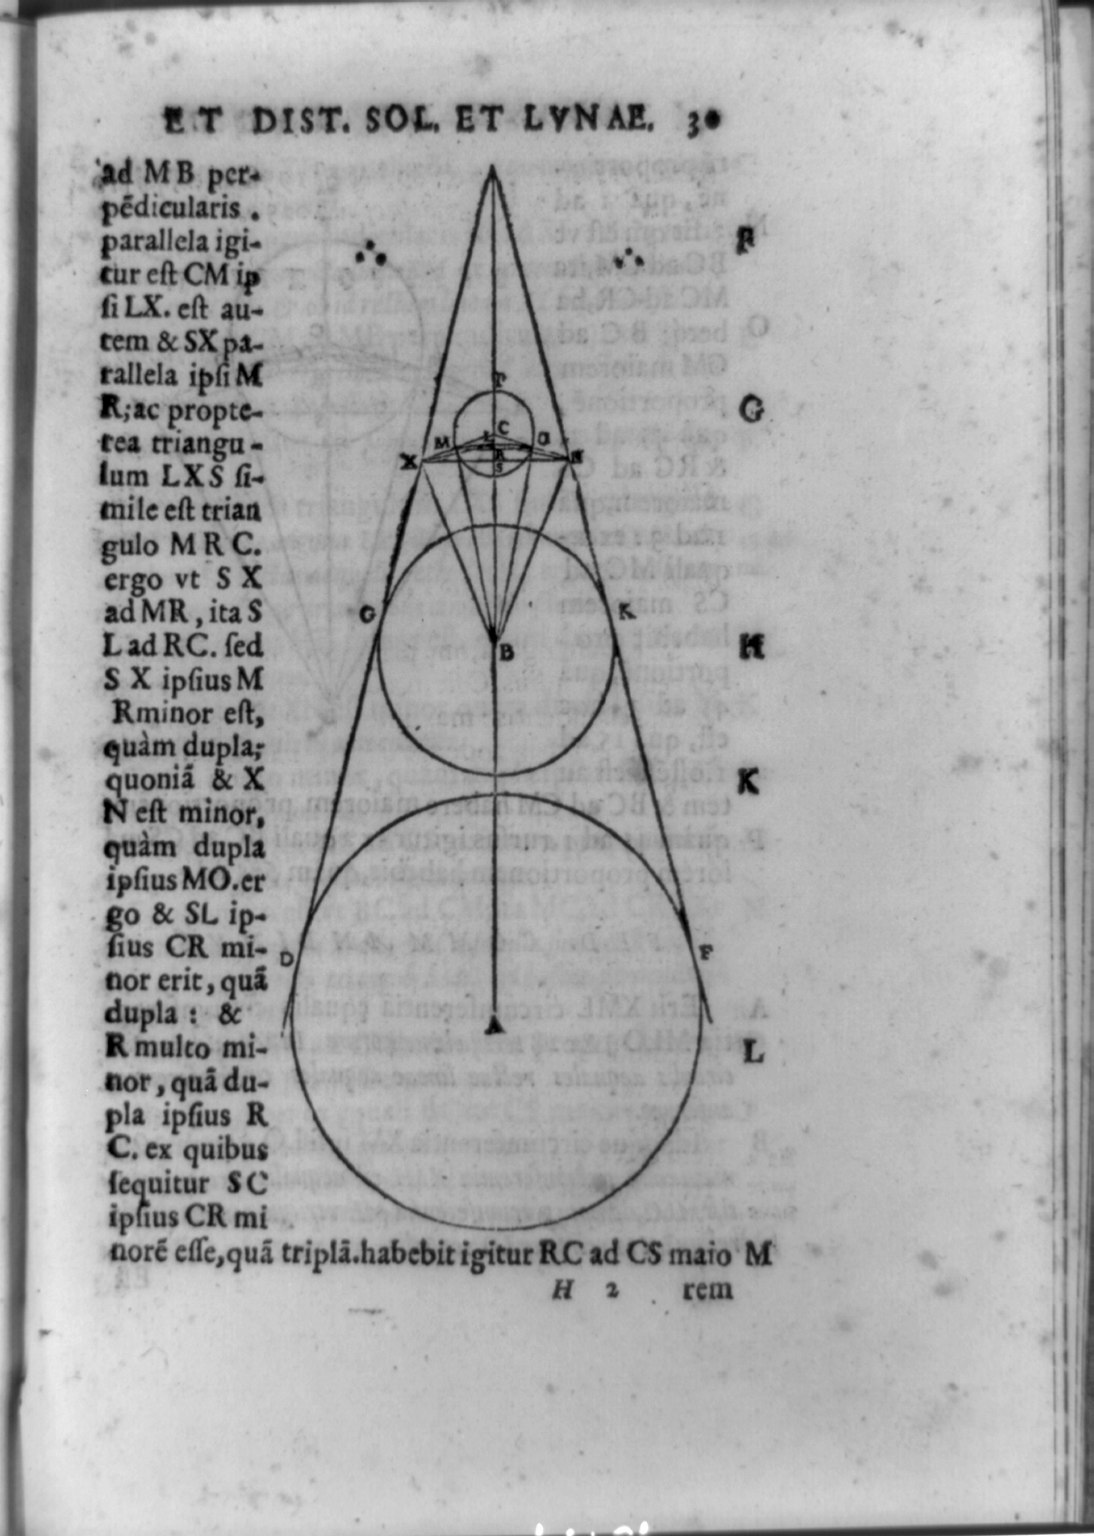 hight resolution of file geometric figure of earth sun and moon calculated by aristarchus to approximate real scale of the solar system lccn92516455 jpg